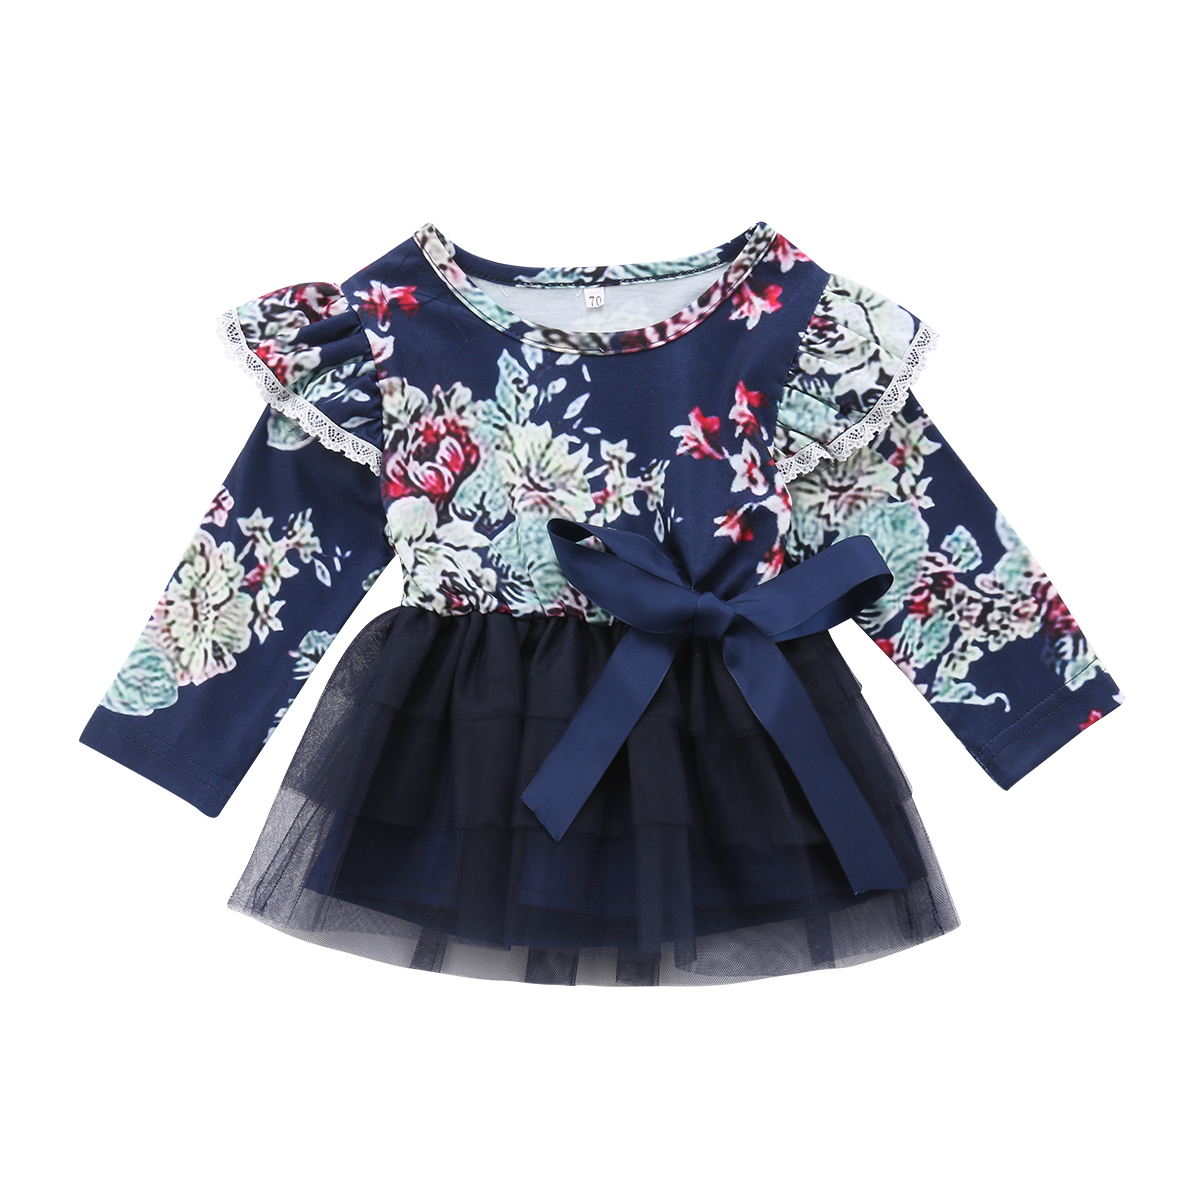 cbb5d0cc08453 Little Sister Family Matching Set Baby Kids Girls Romper Jumpsuit Floral  Stripes Pants Pink Big Sister Shirt Outfit Clothing